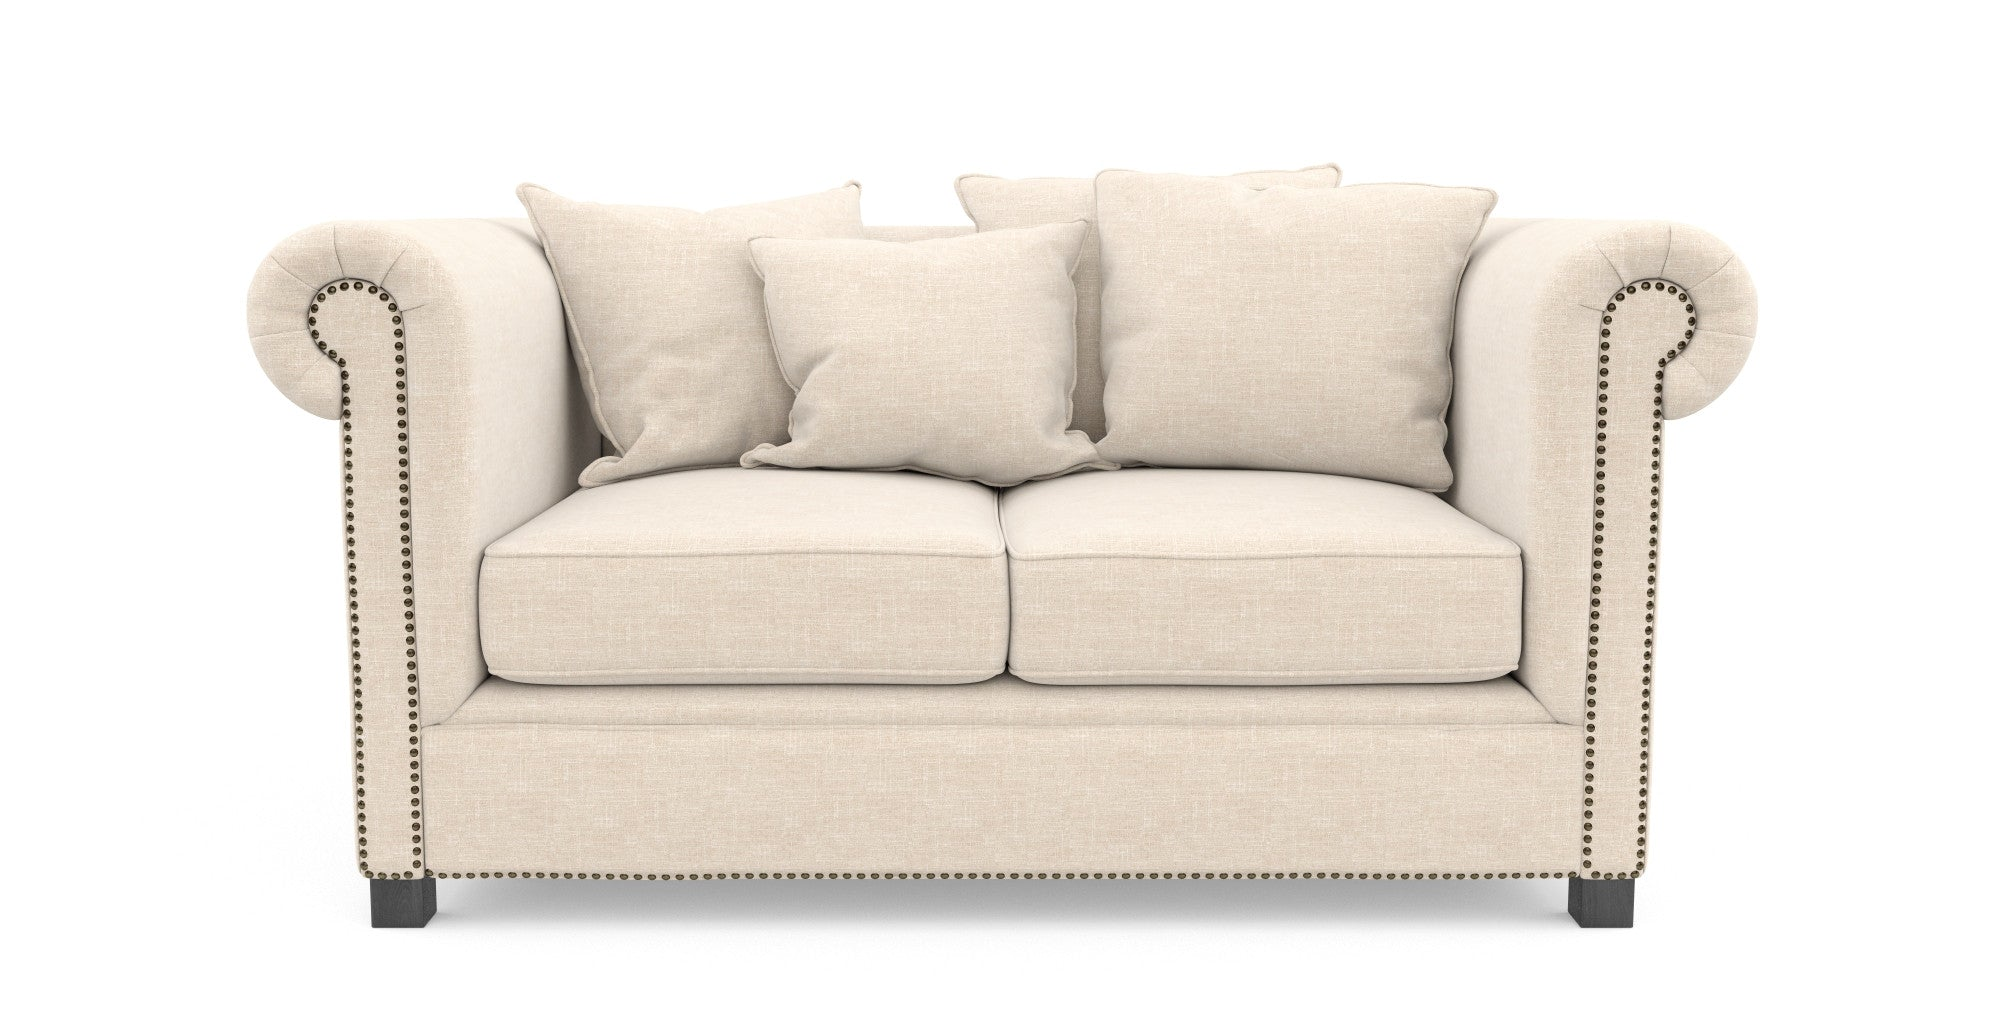 Jamie 2 Seater Sofa